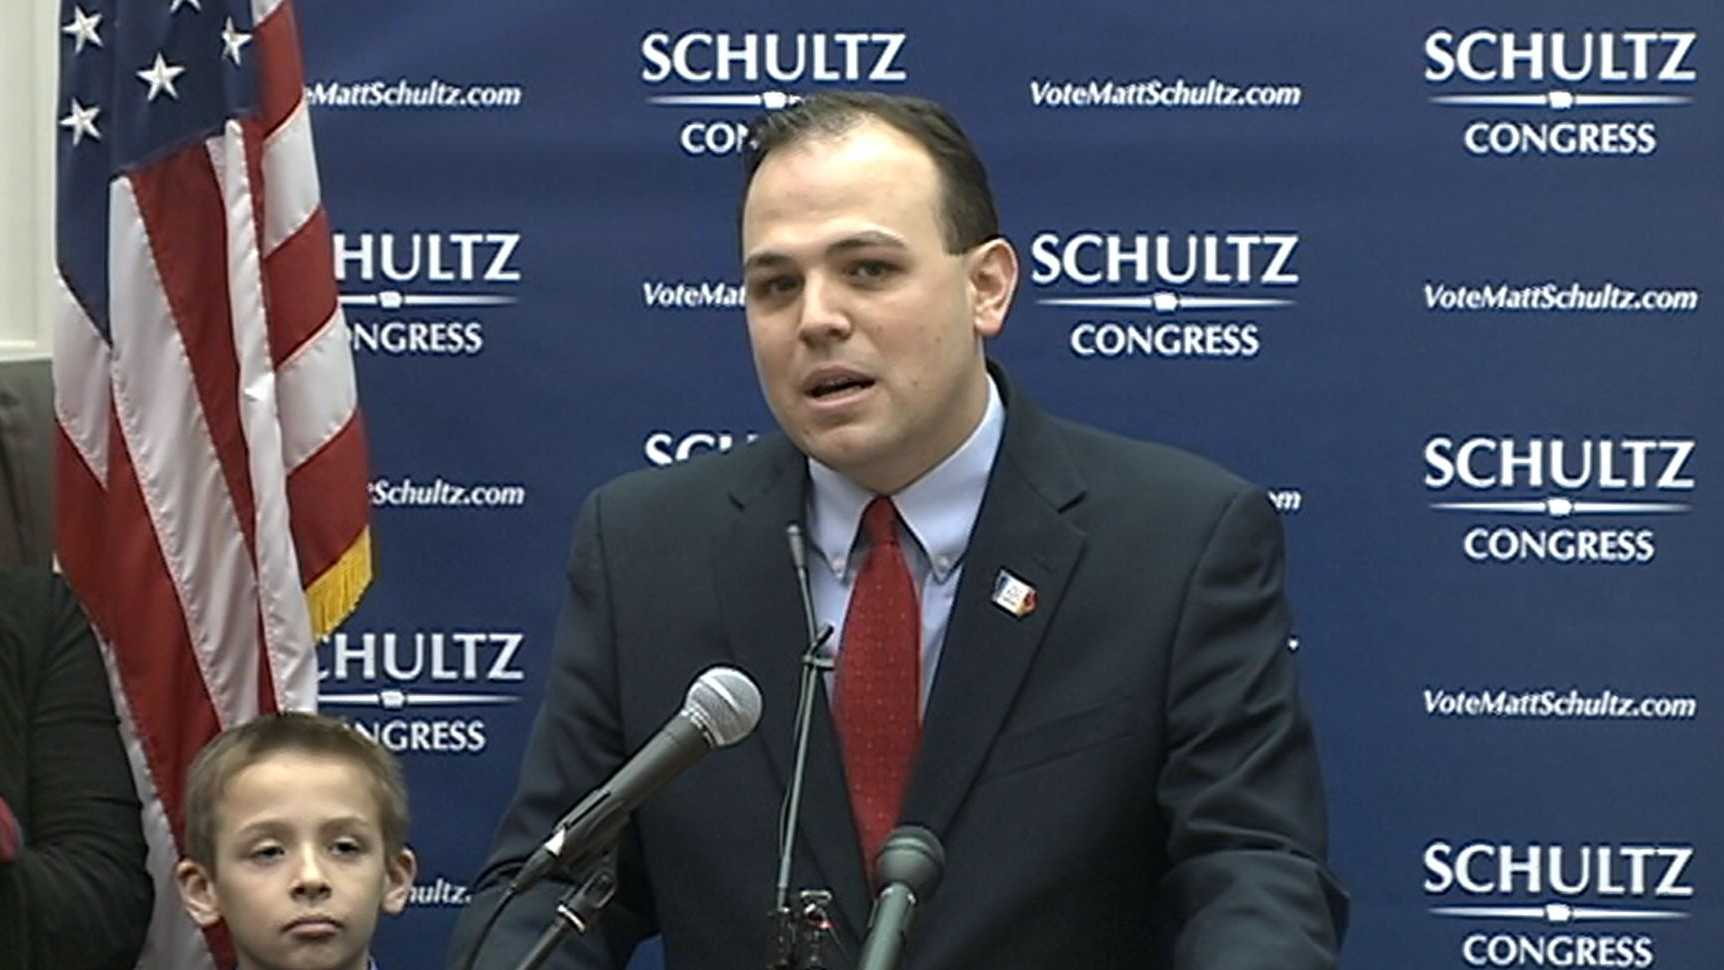 Matt Schultz campaign announcement